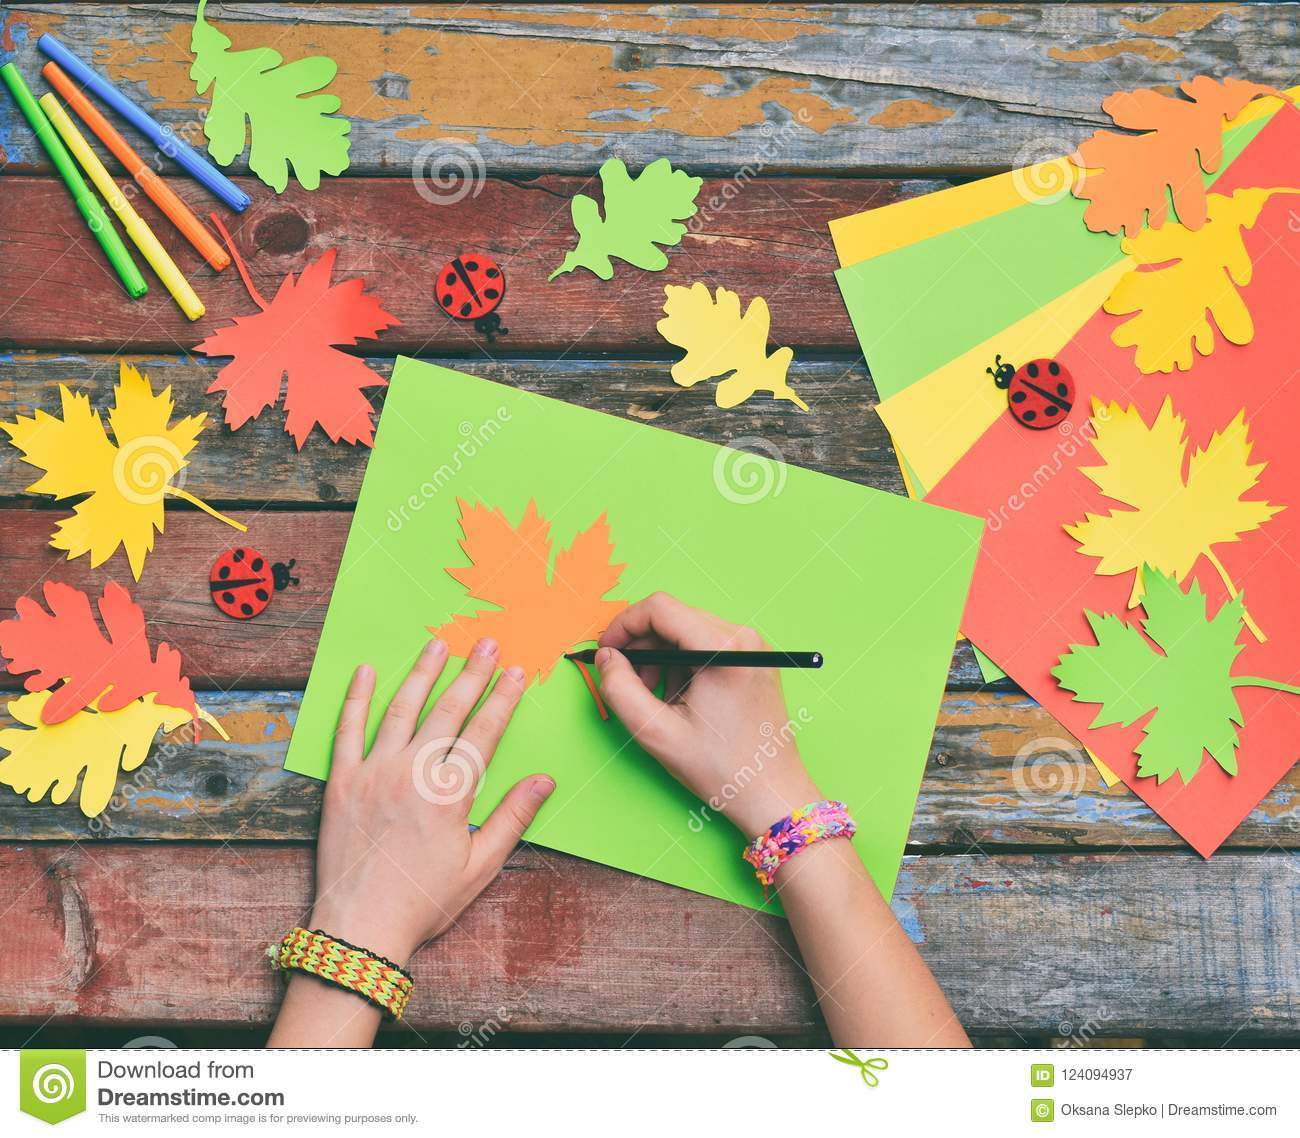 Making Maple Leaf From Colored Paper With Your Own Hands For